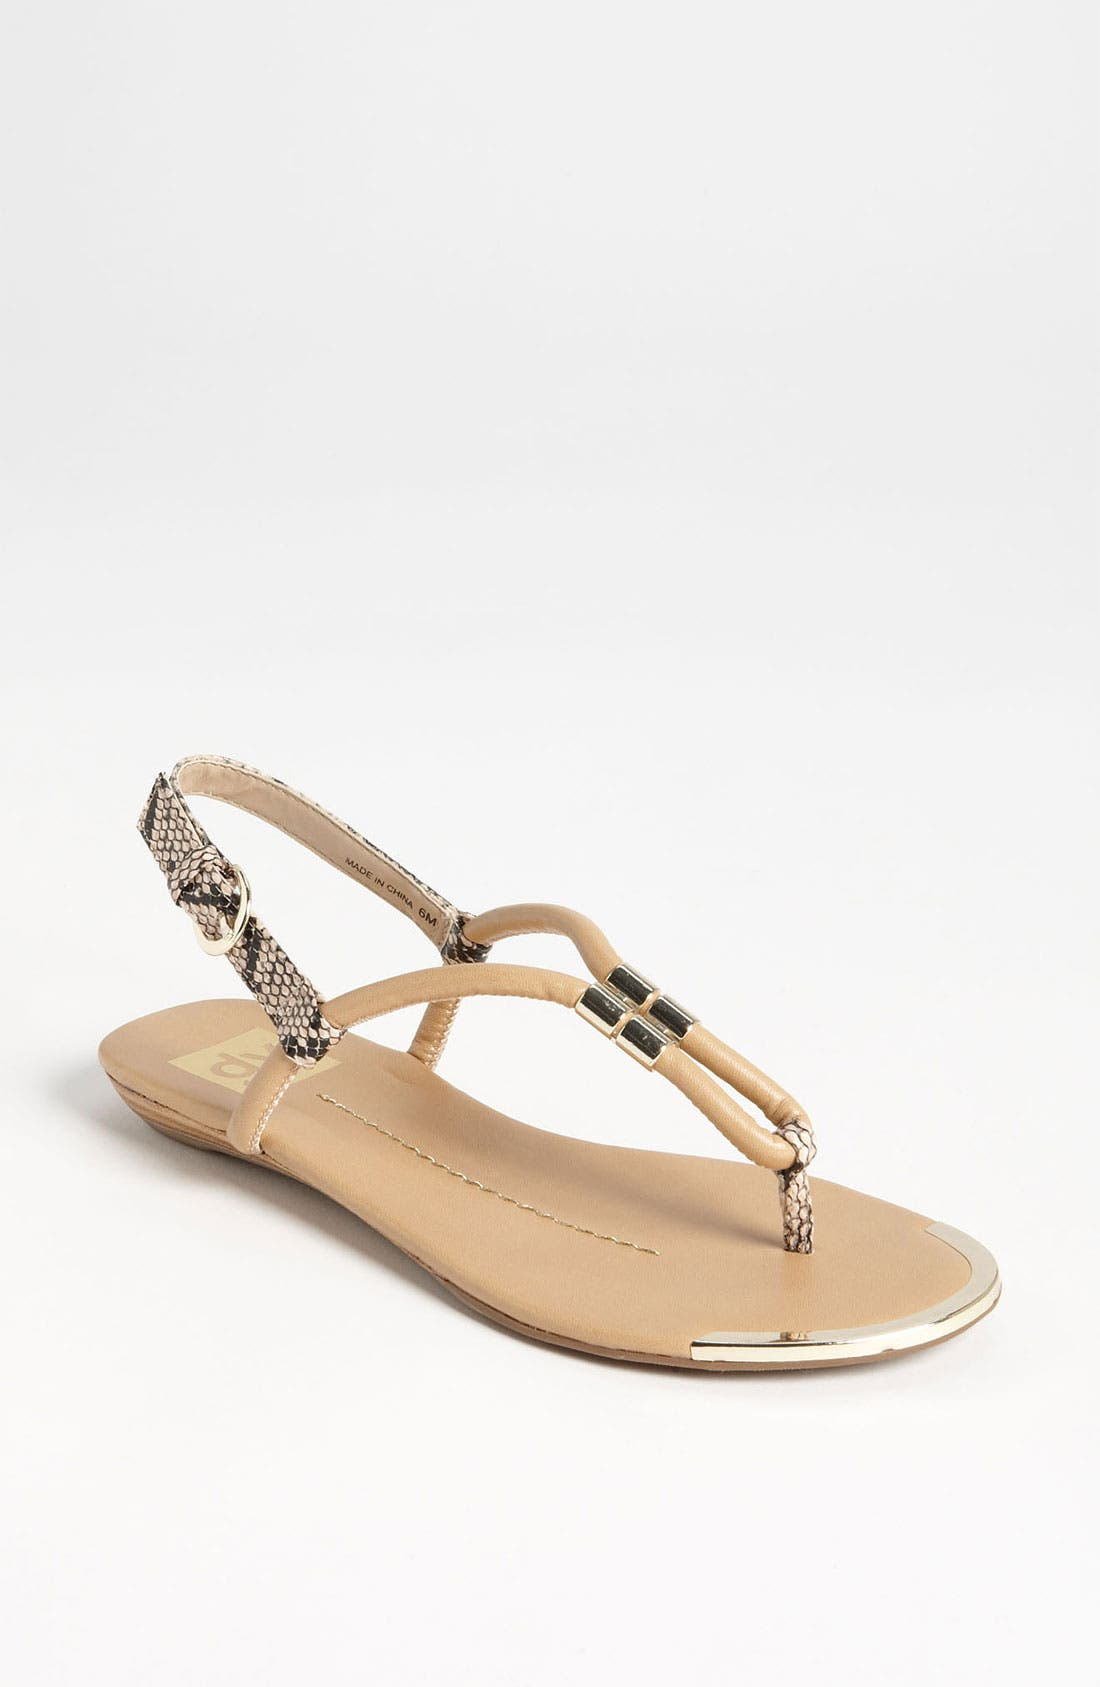 Alternate Image 1 Selected - DV by Dolce Vita 'Ayden' Sandal